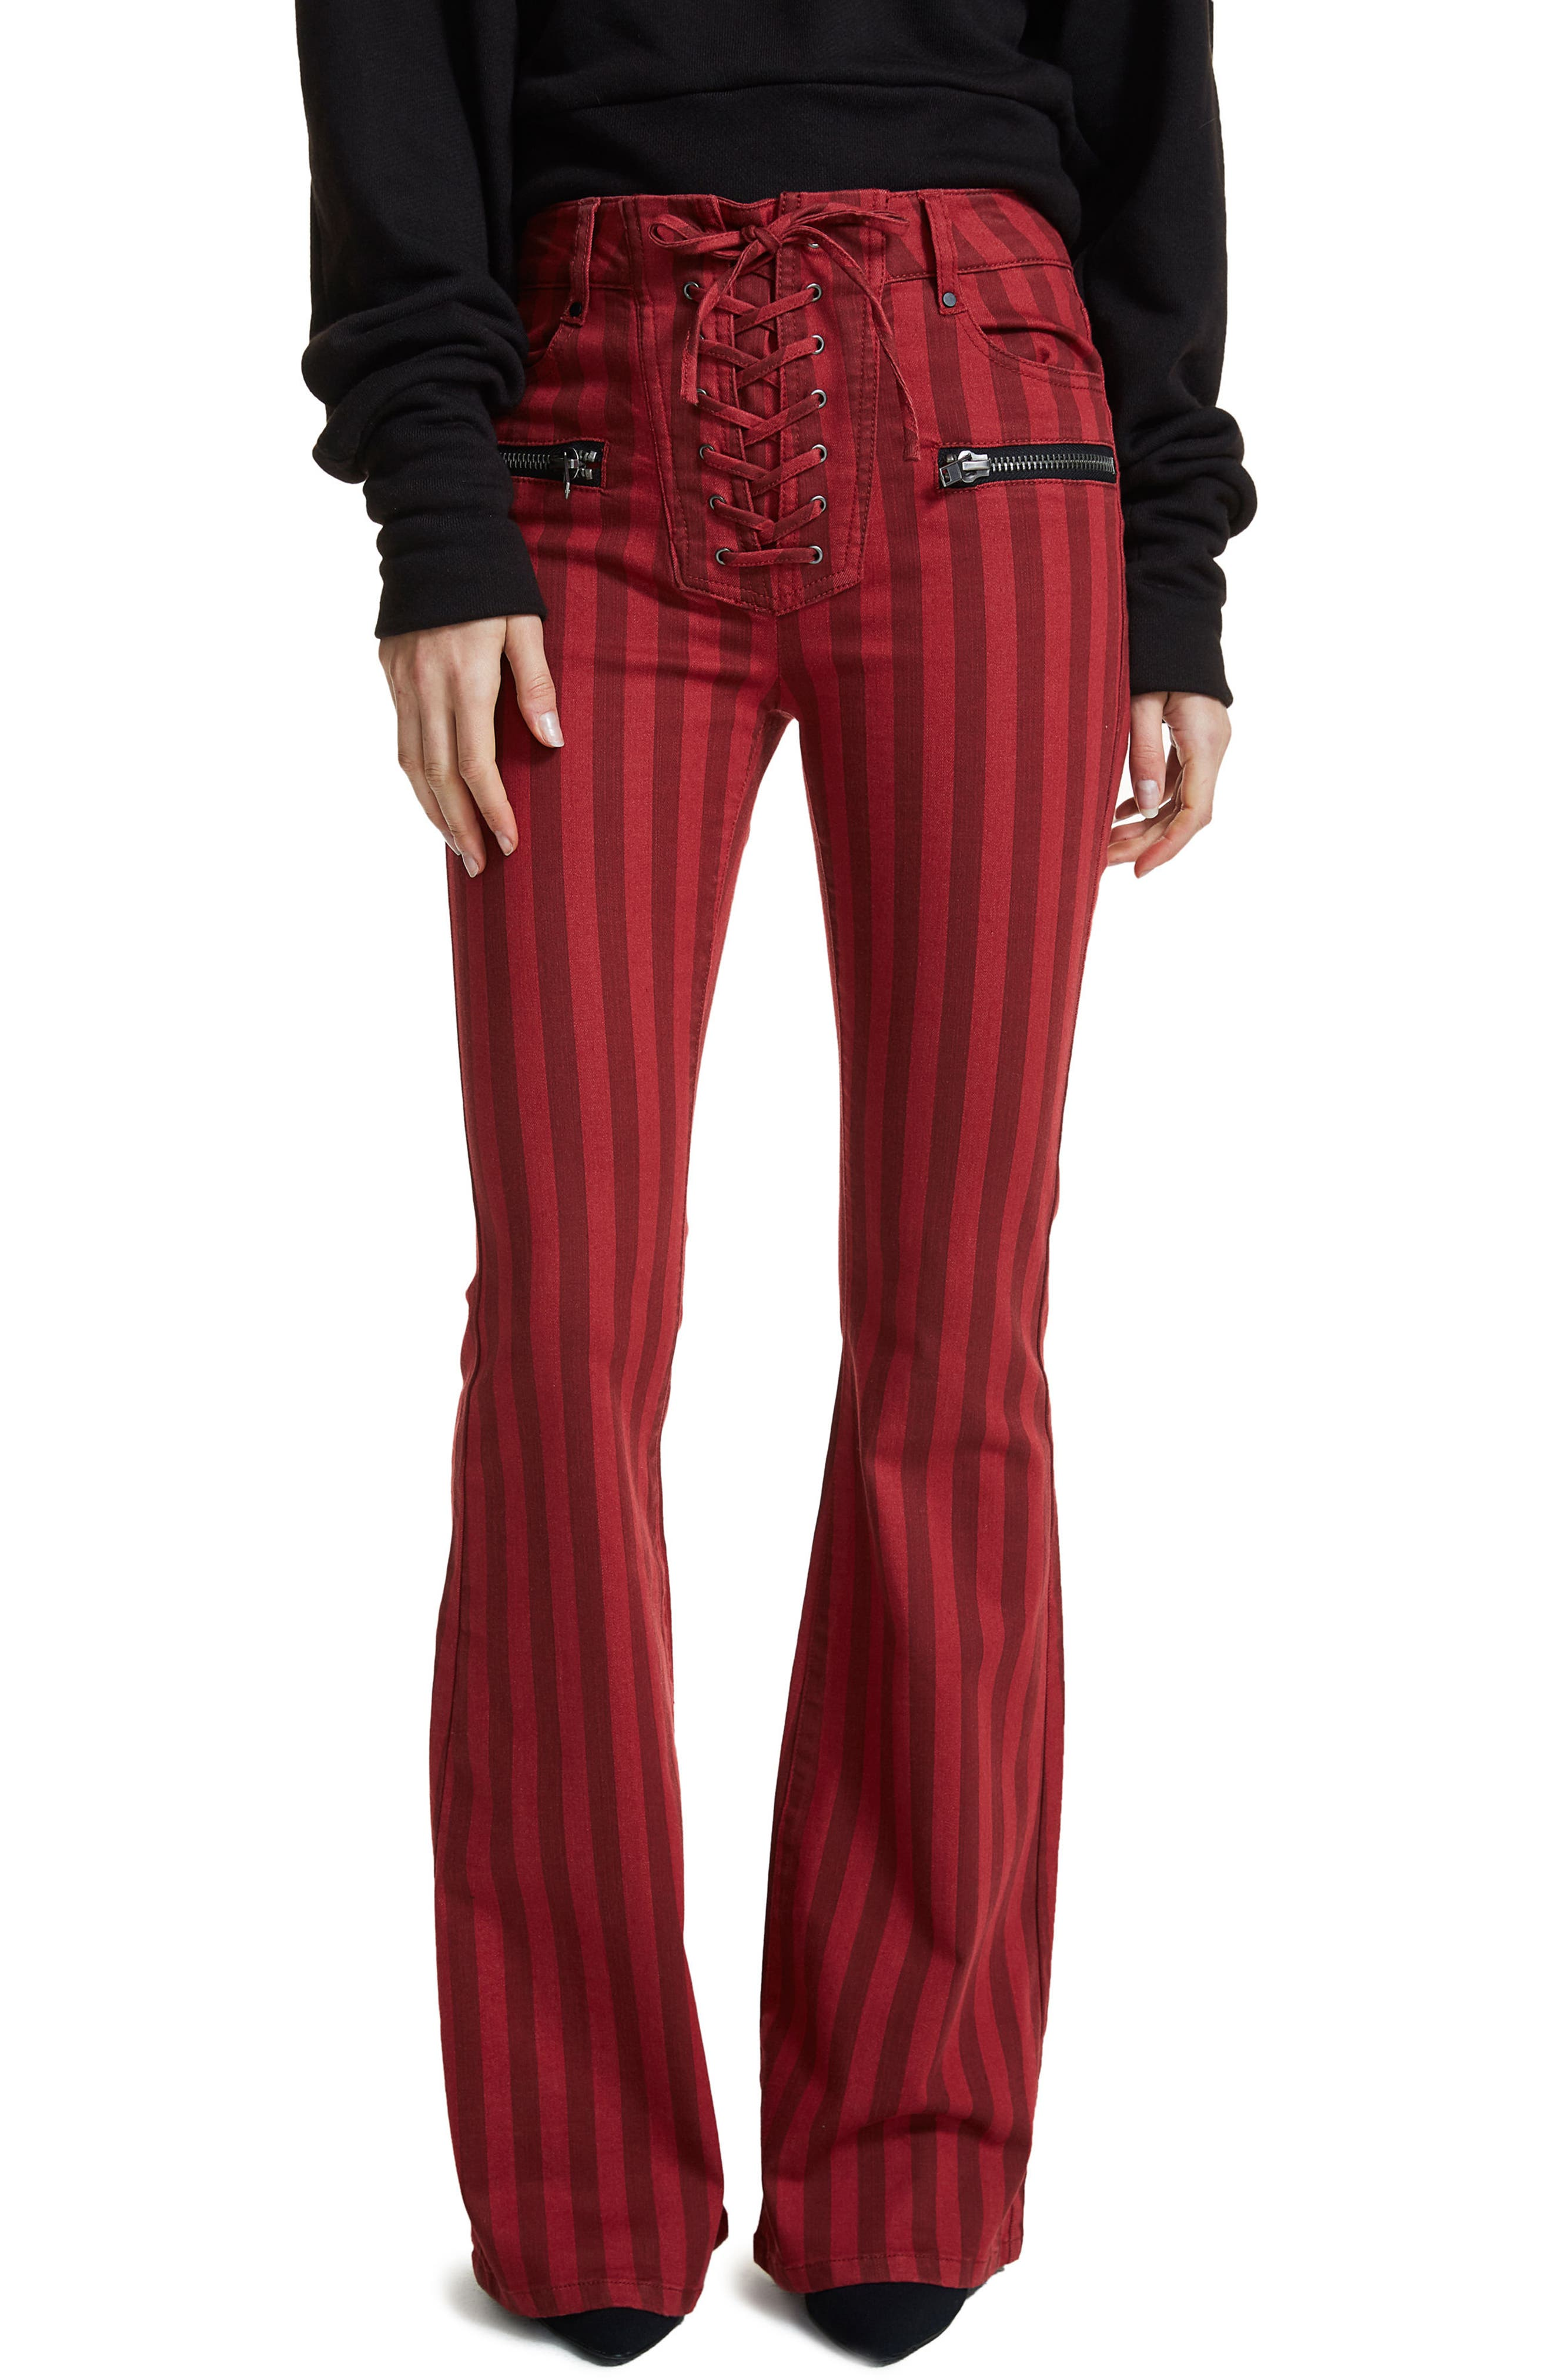 Alternate Image 1 Selected - AFRM Claire Lace-Up Flare Leg Jeans (Red Stripe)